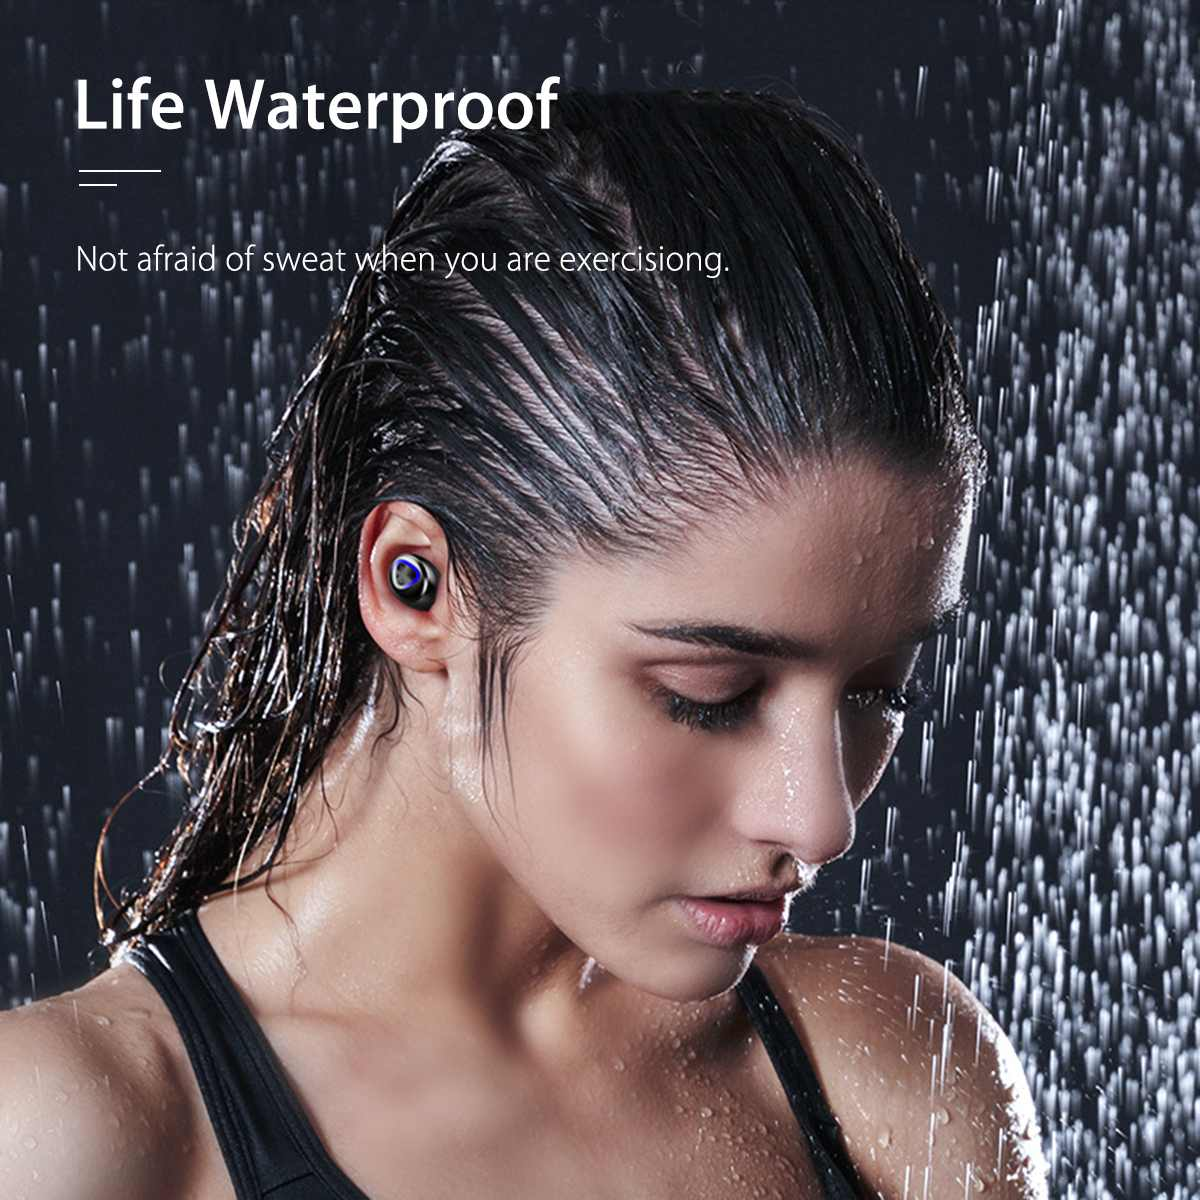 TWS True Wireless Earbuds Bluetooth V5.0 4000mAh Waterproof Active Noise-Cancellation 2